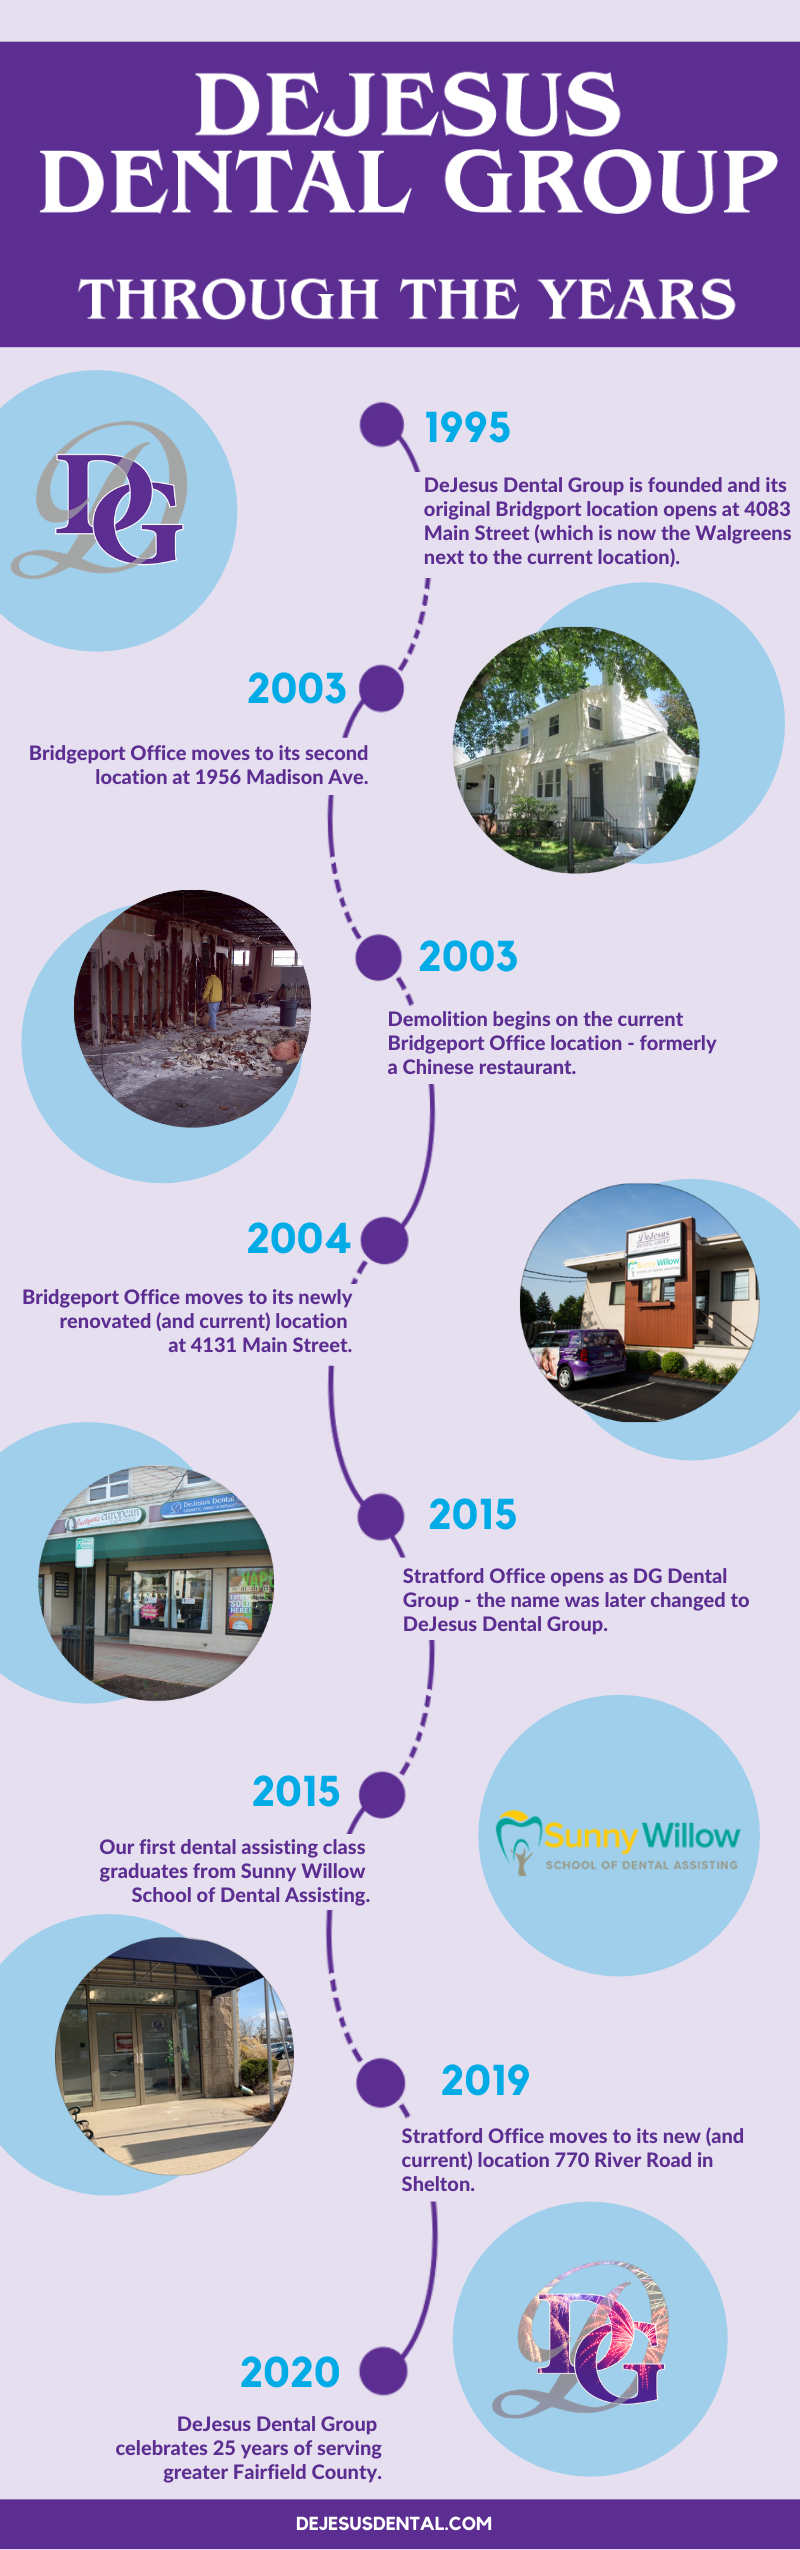 Timeline of the History of DeJesus Dental Group